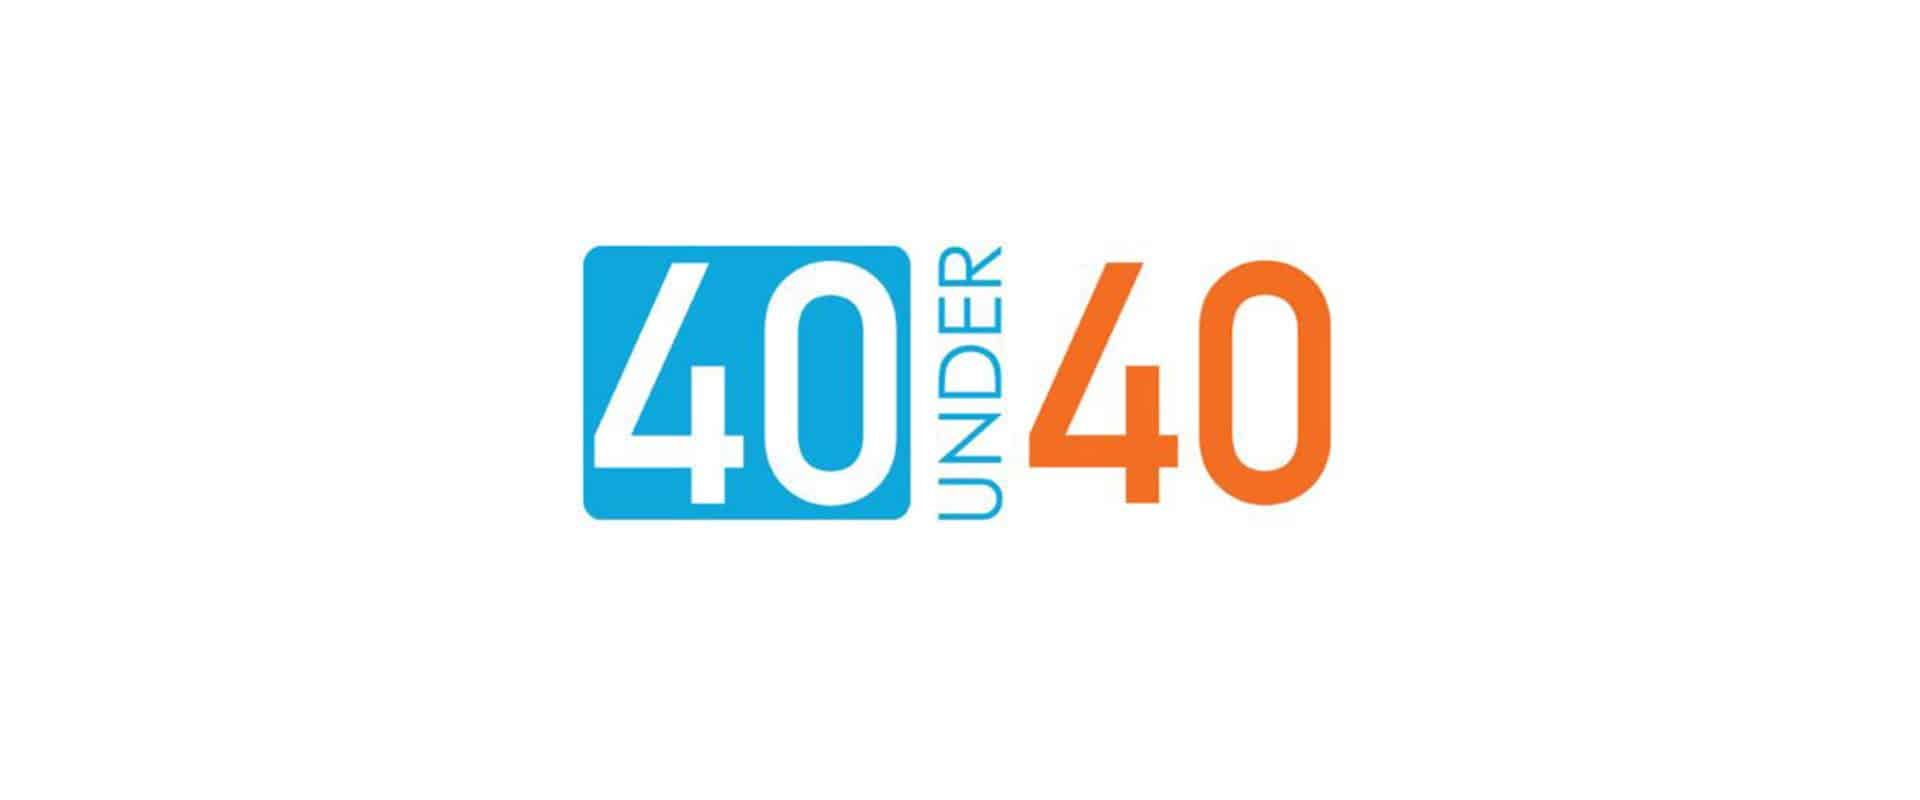 WPU Staff member, Jodi Stamey, was selected to the TBJ's 40 Under 40